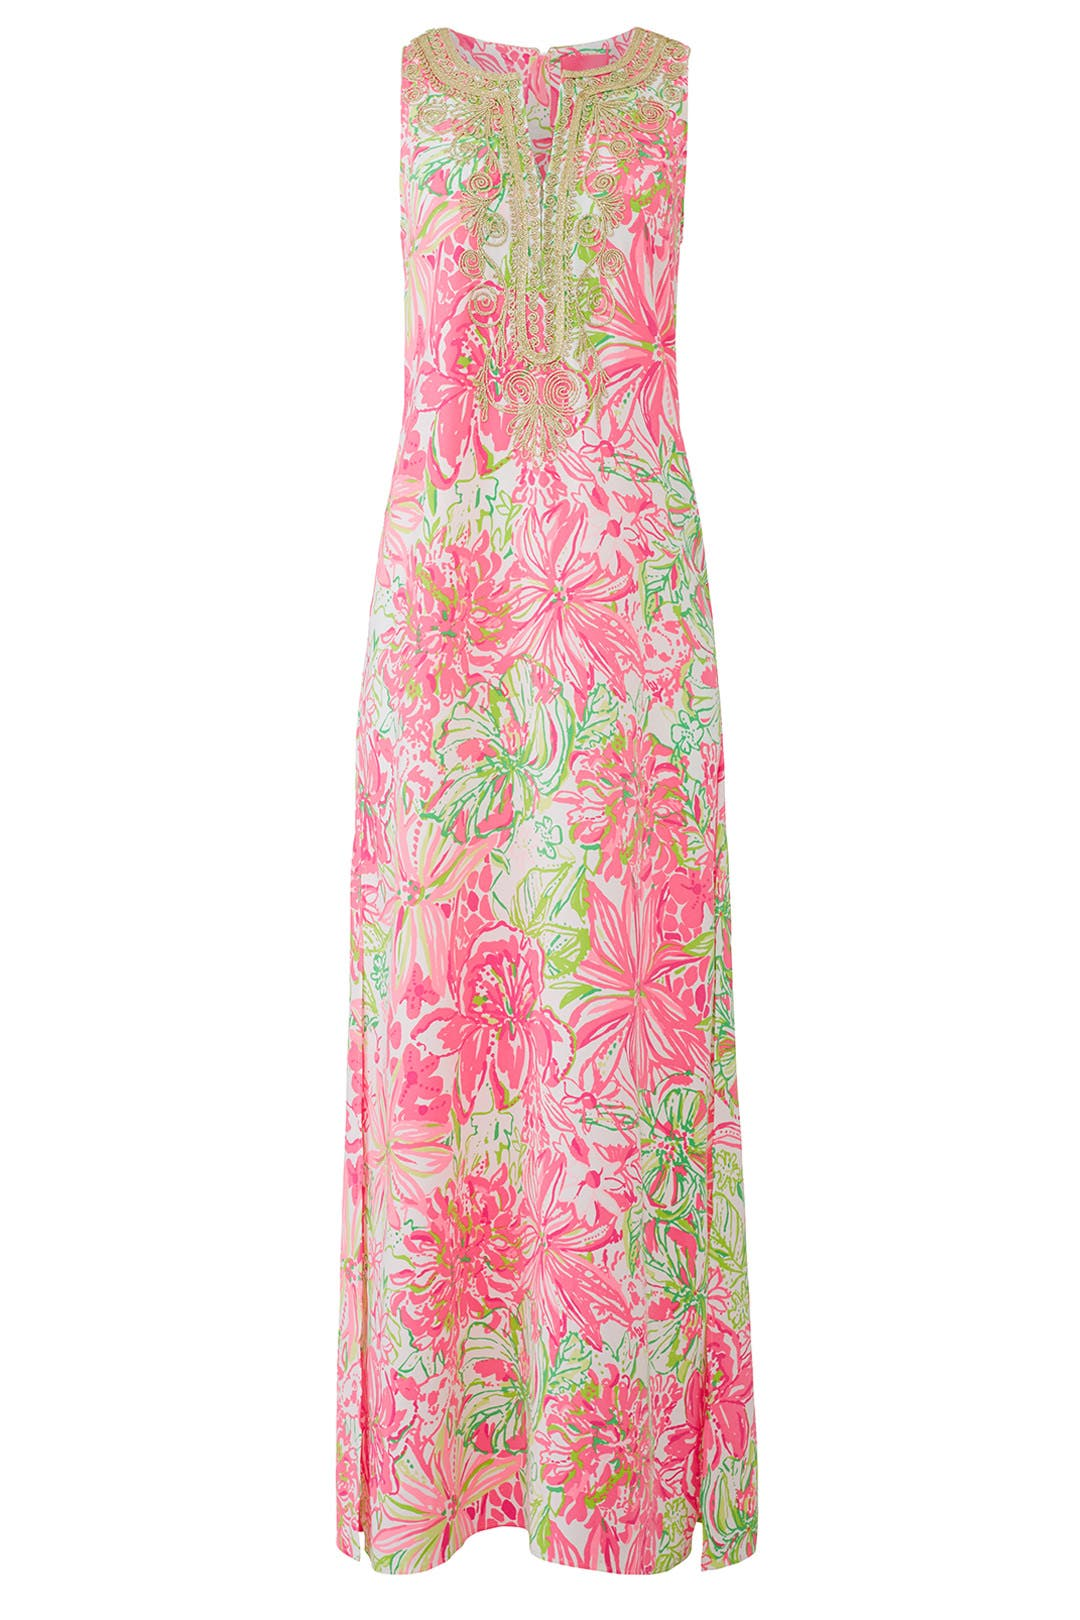 0959ffb45bb68 Carlotta Maxi by Lilly Pulitzer for $40 - $50 | Rent the Runway